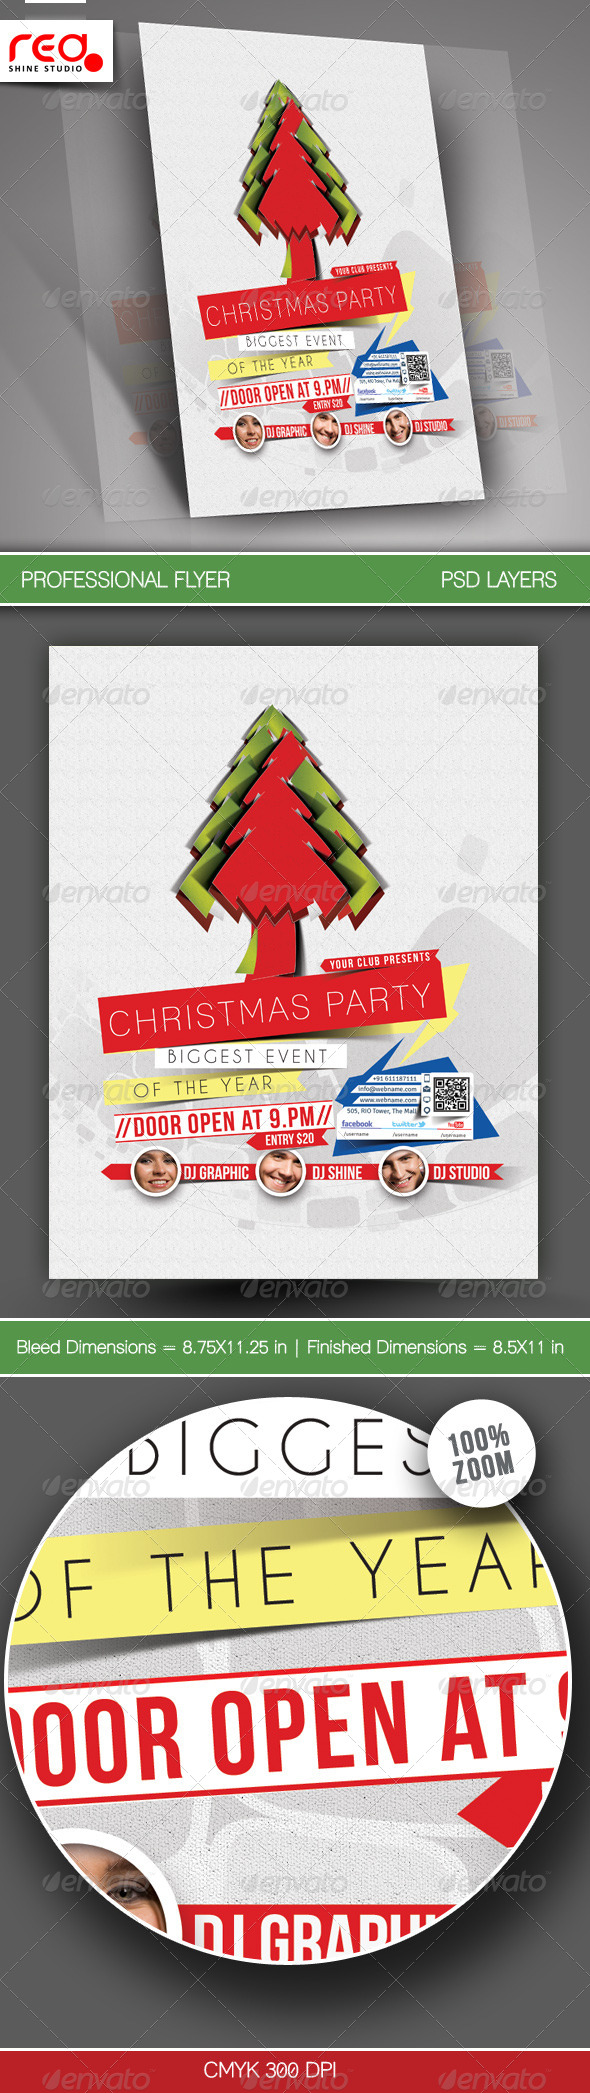 GraphicRiver Christmas Party Flyer & Poster Template 6005537